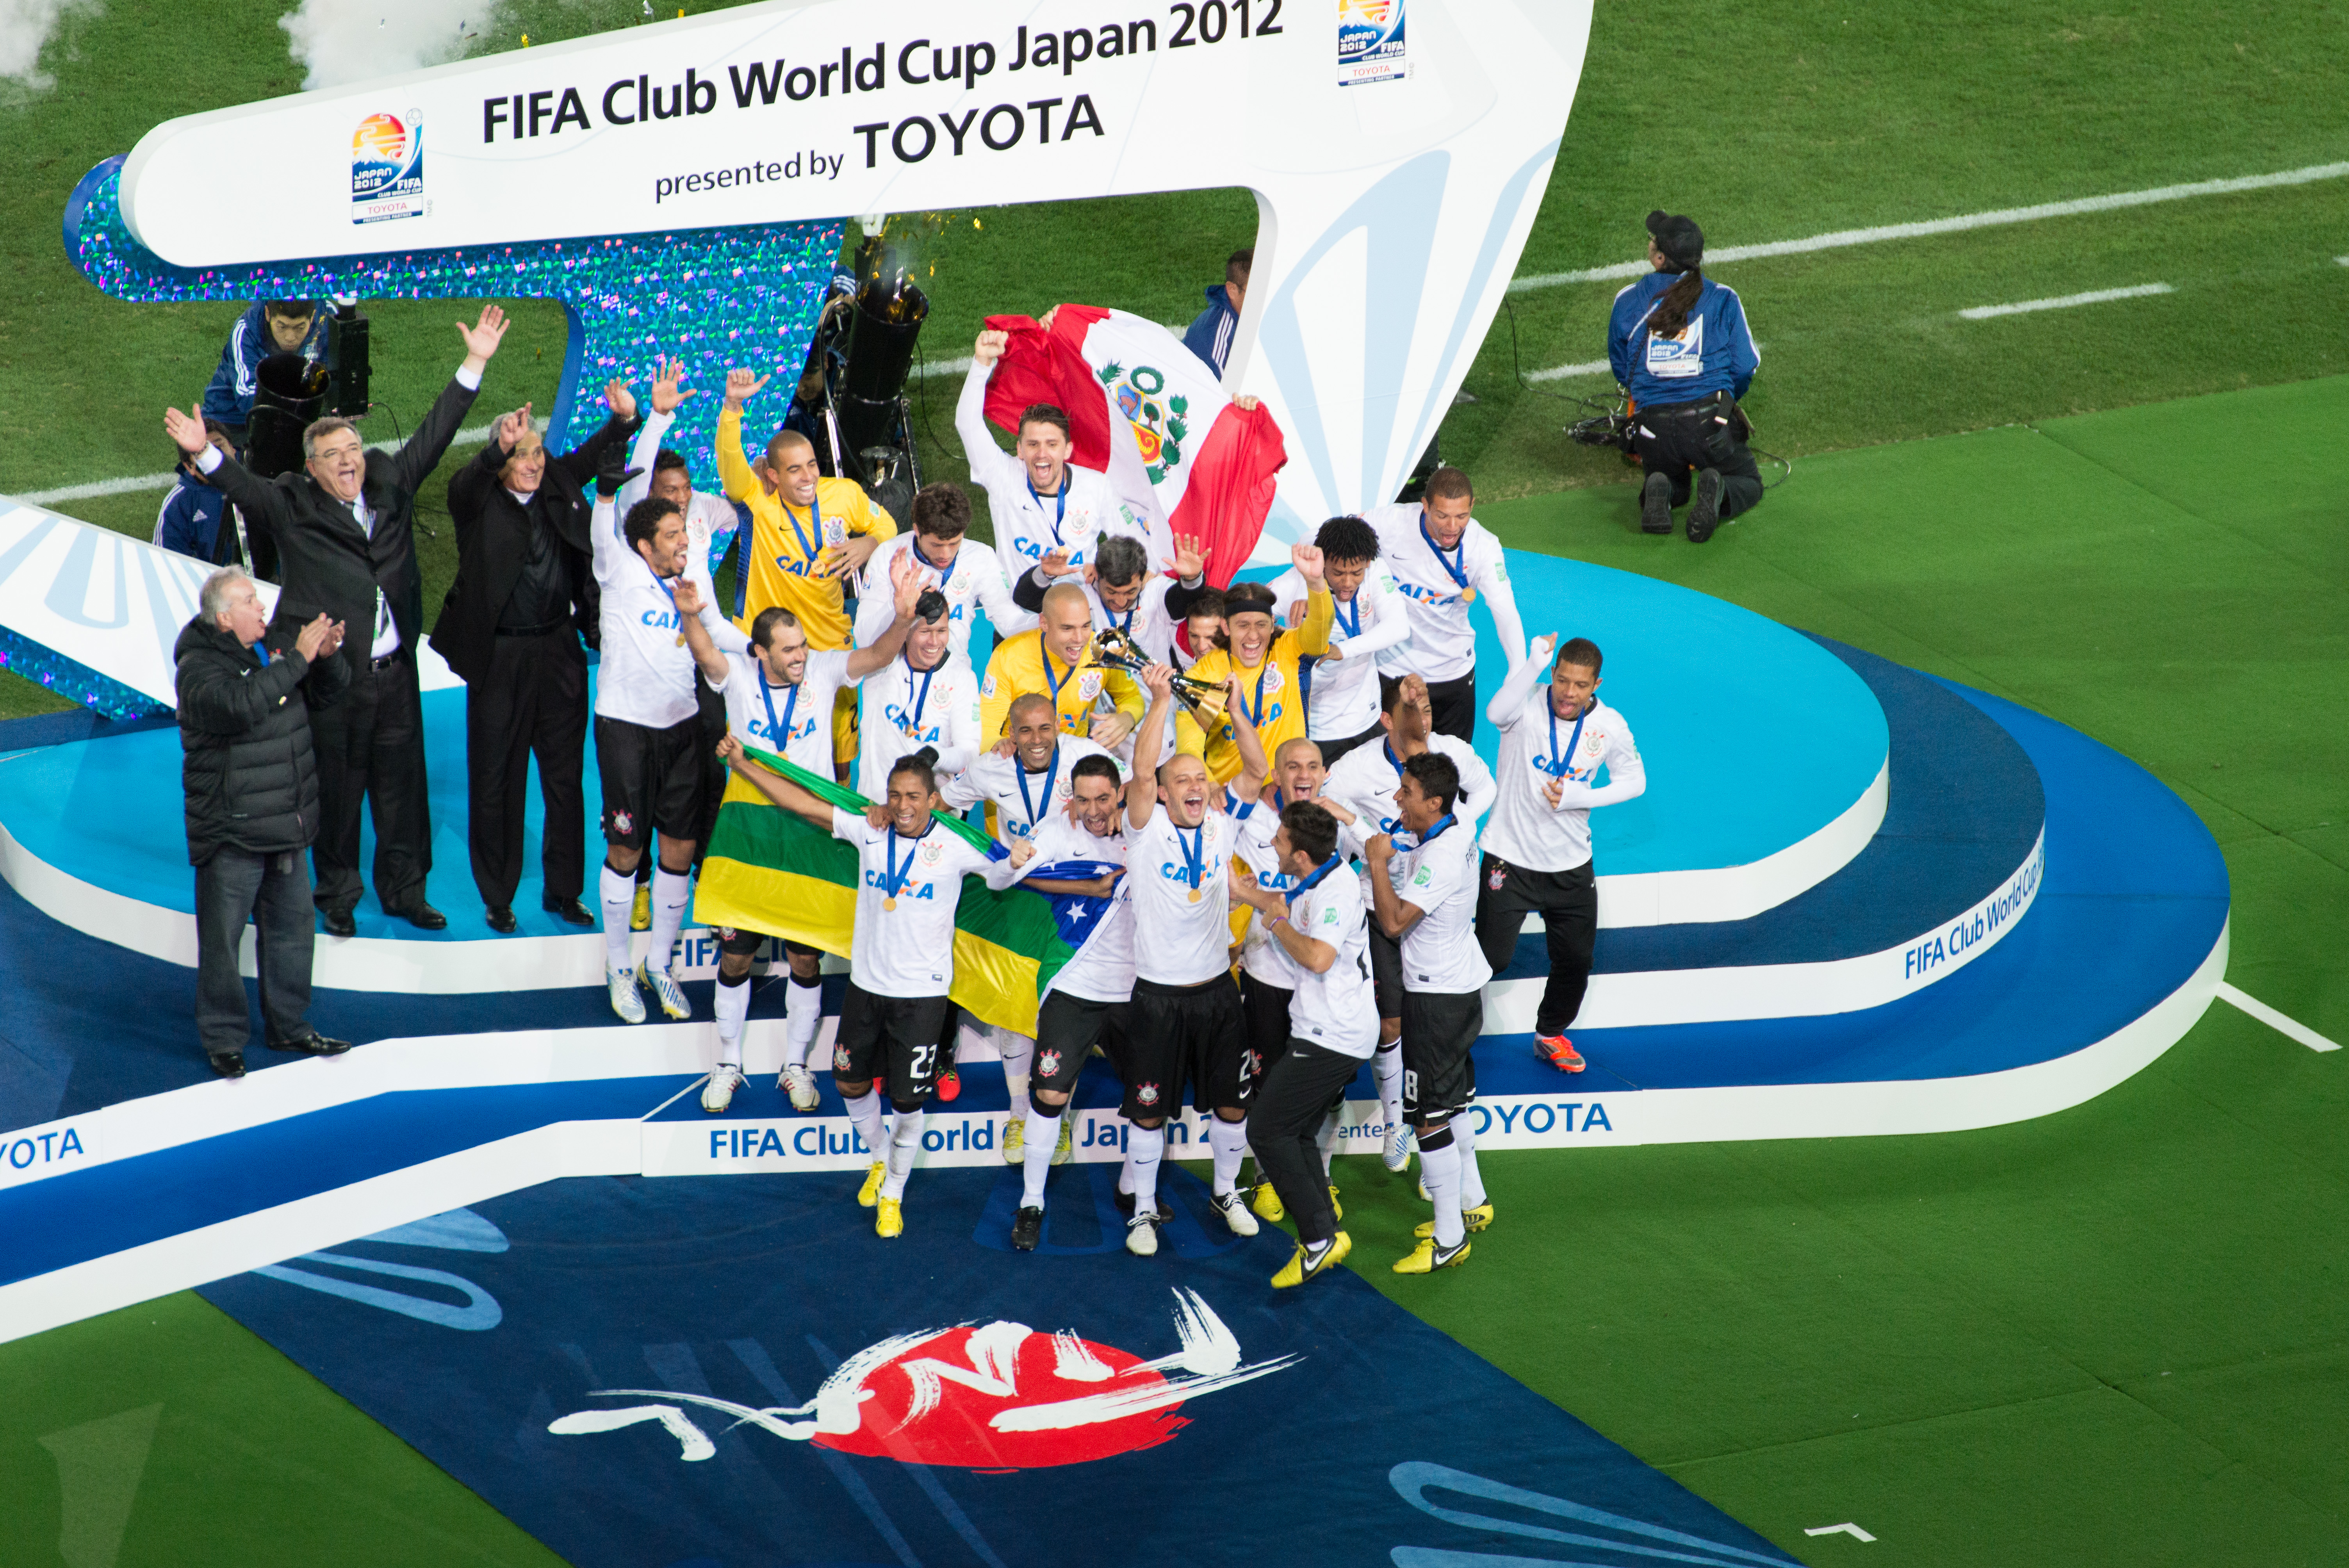 Description Corinthians Club World Cup 2012